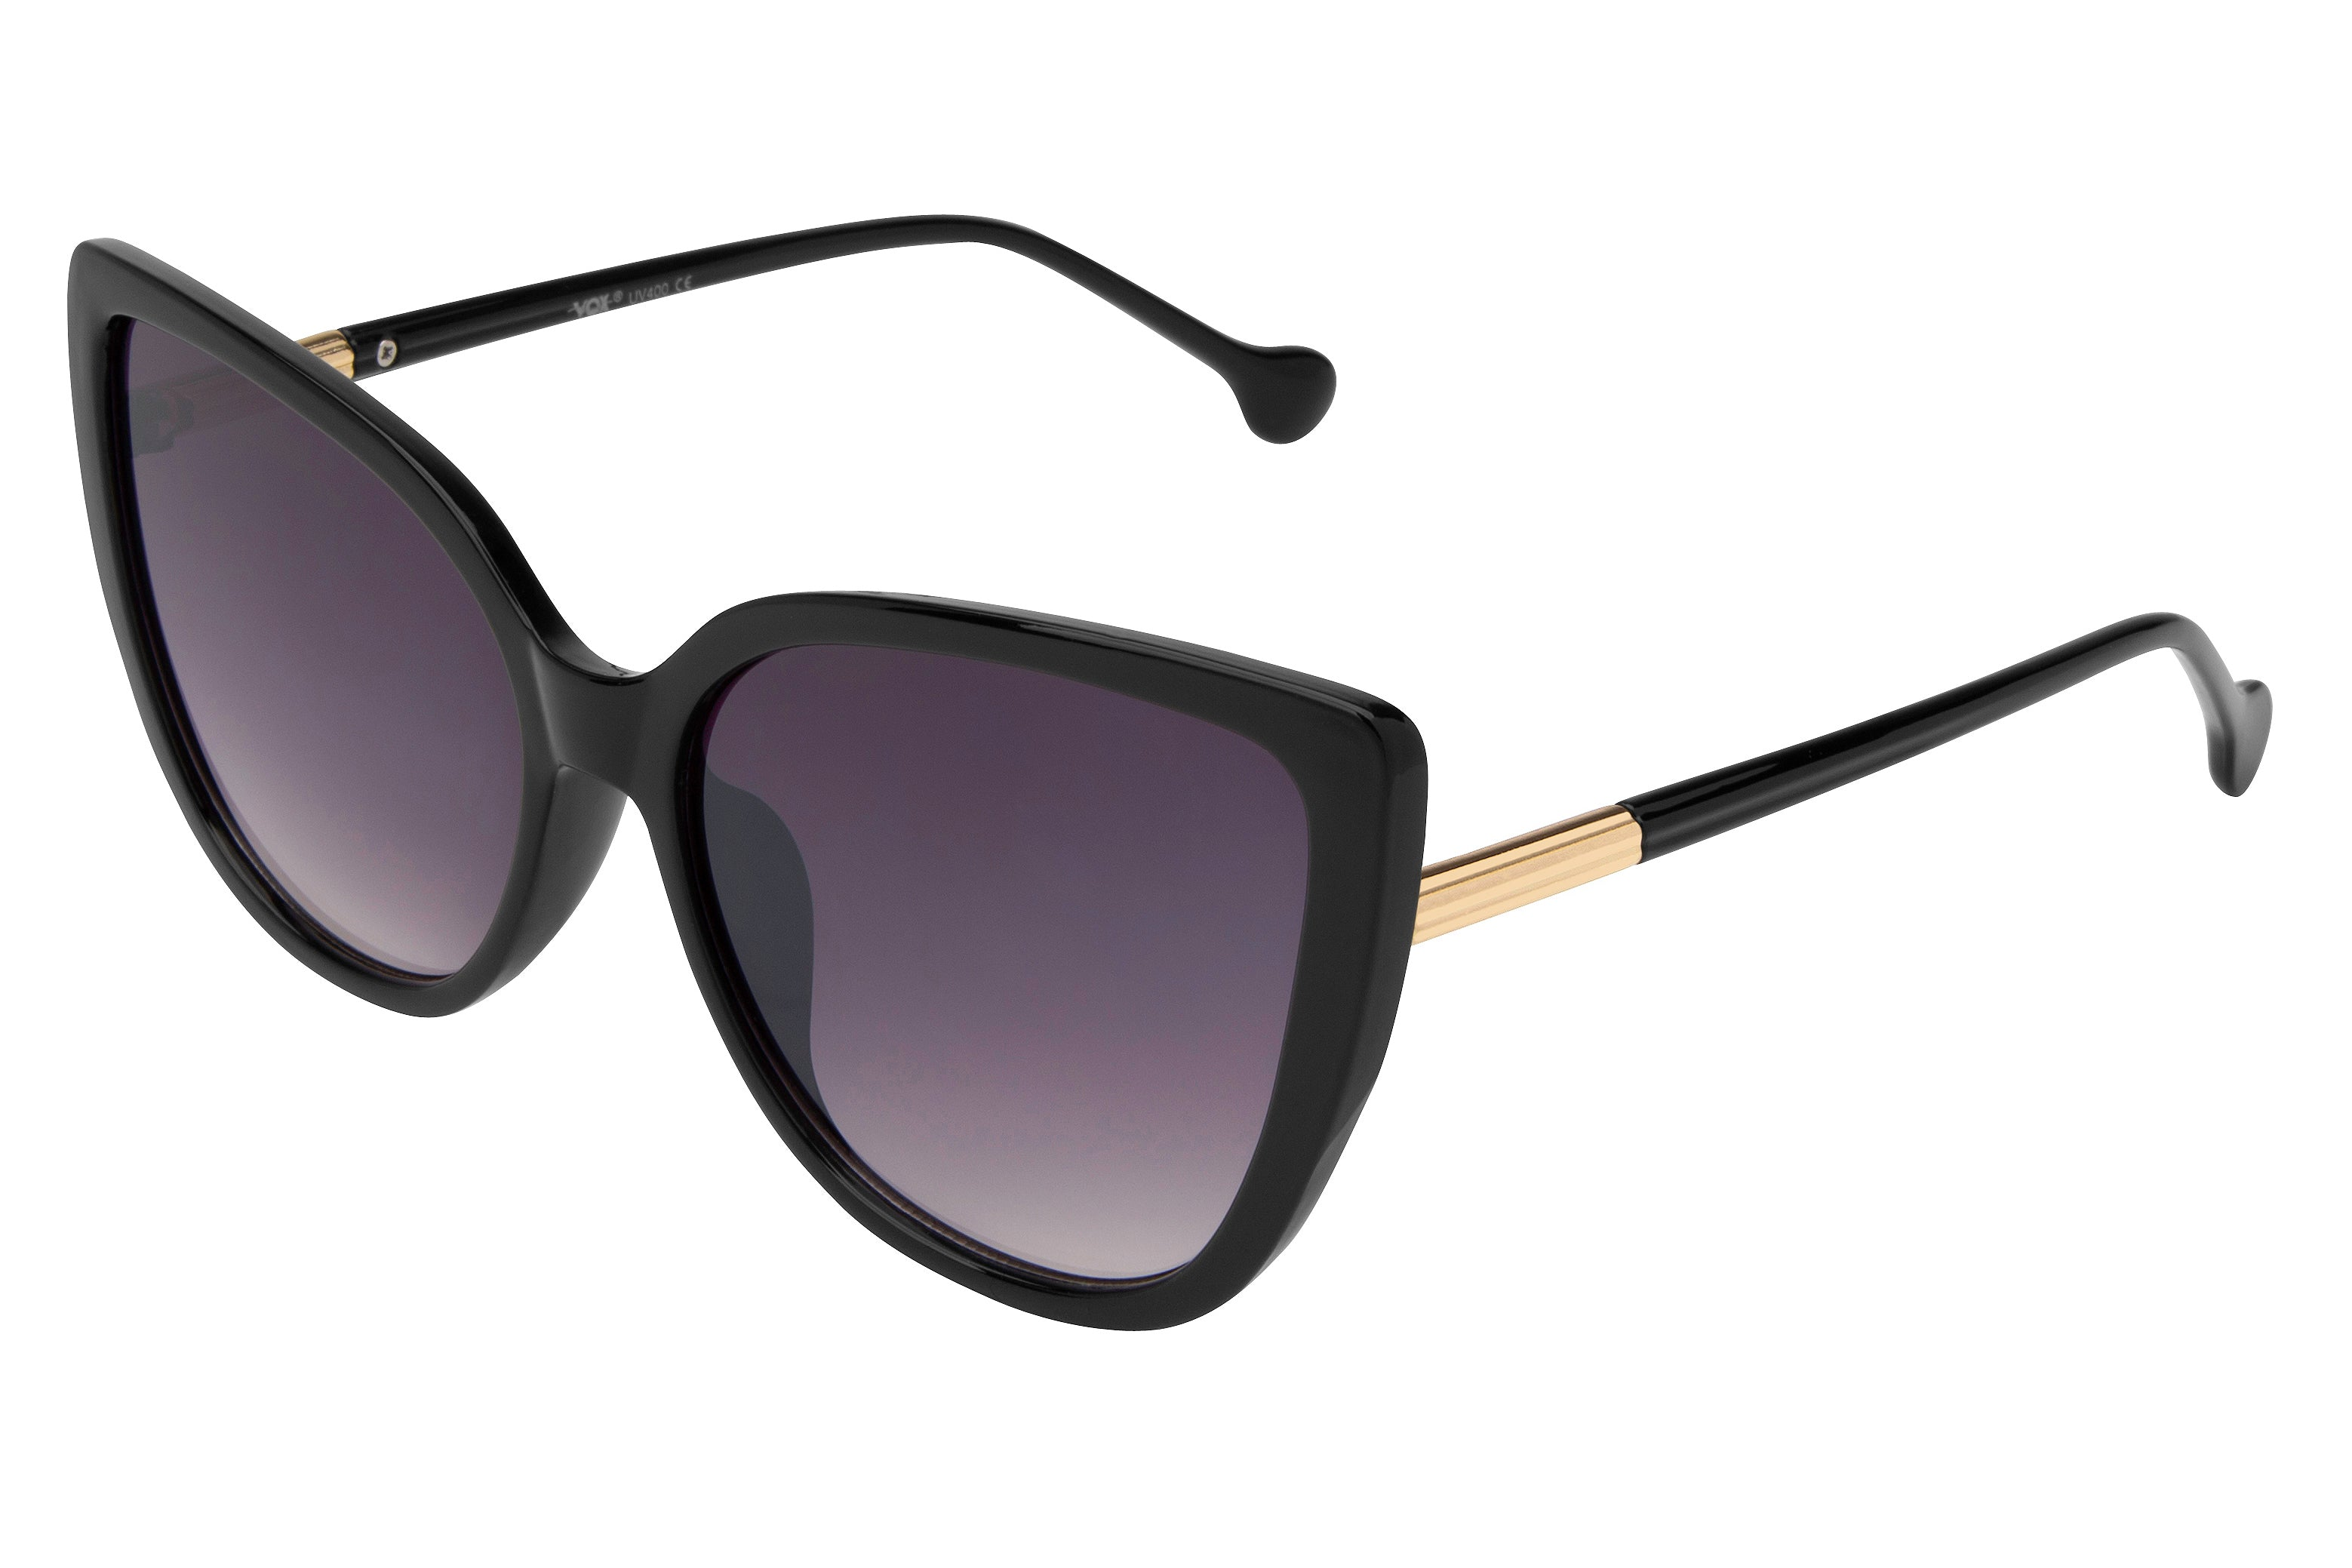 66199 - Vox Women's PC Fashion Sunglasses